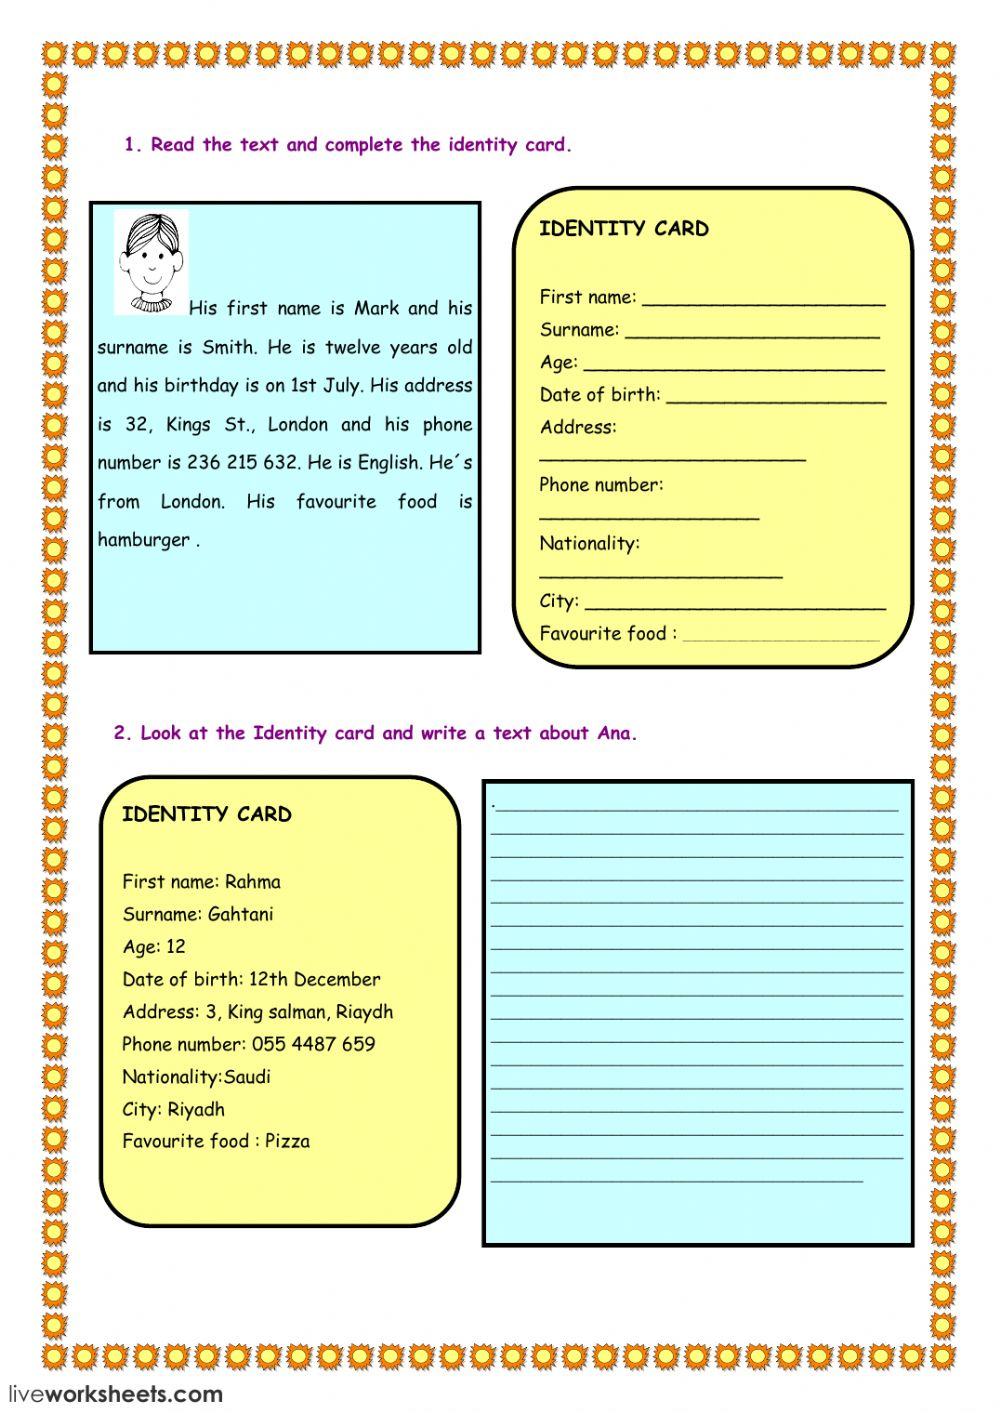 complete the ID card - Interactive worksheet